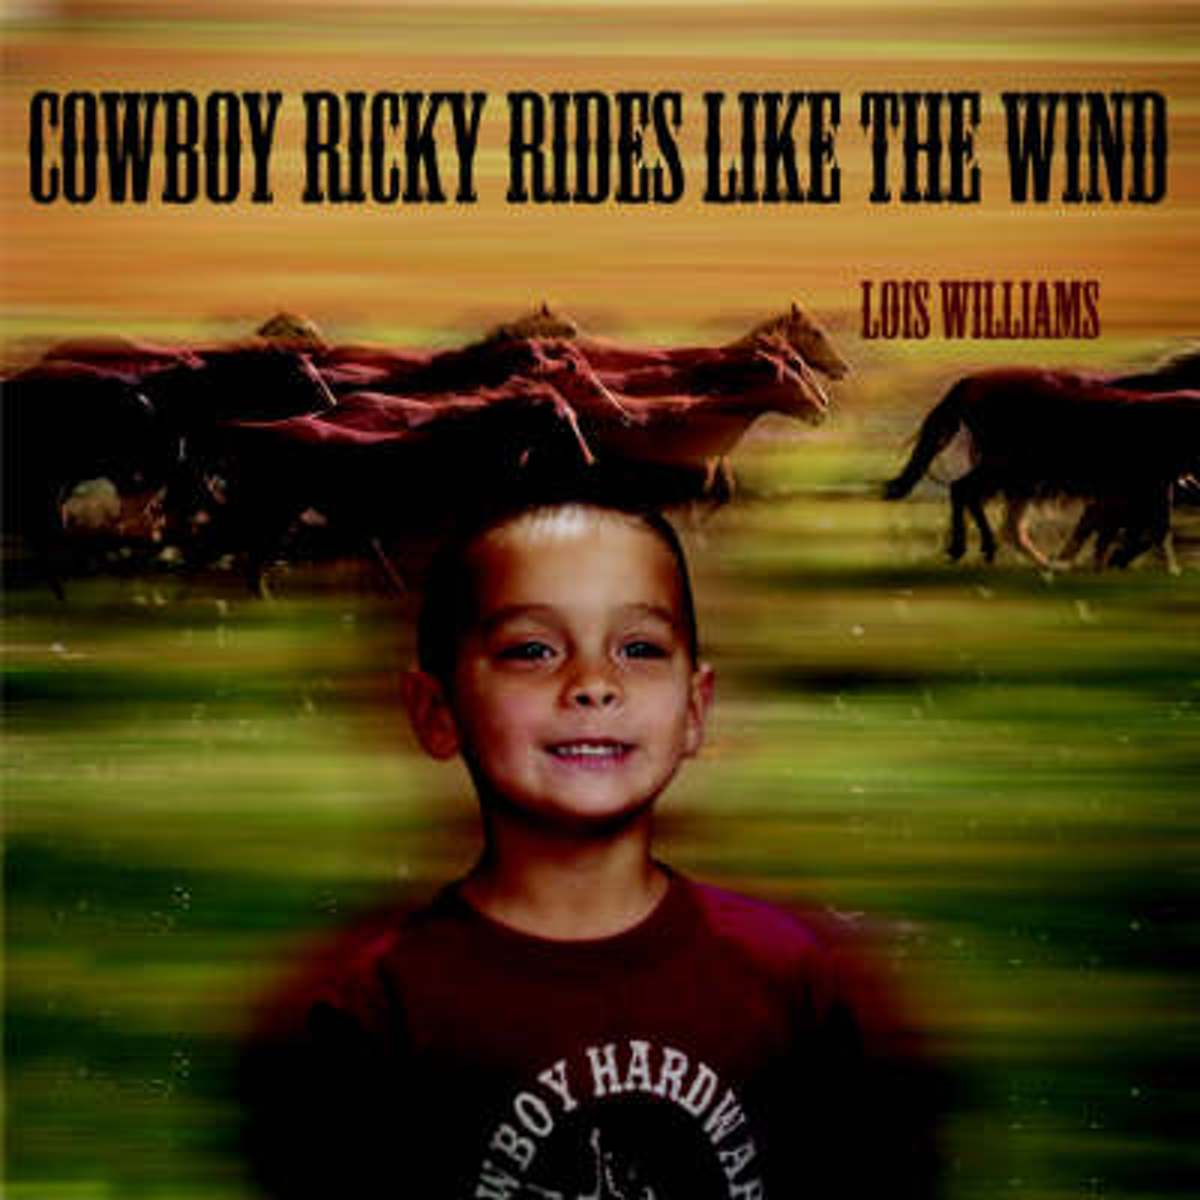 Cowboy Ricky Rides Like the Wind